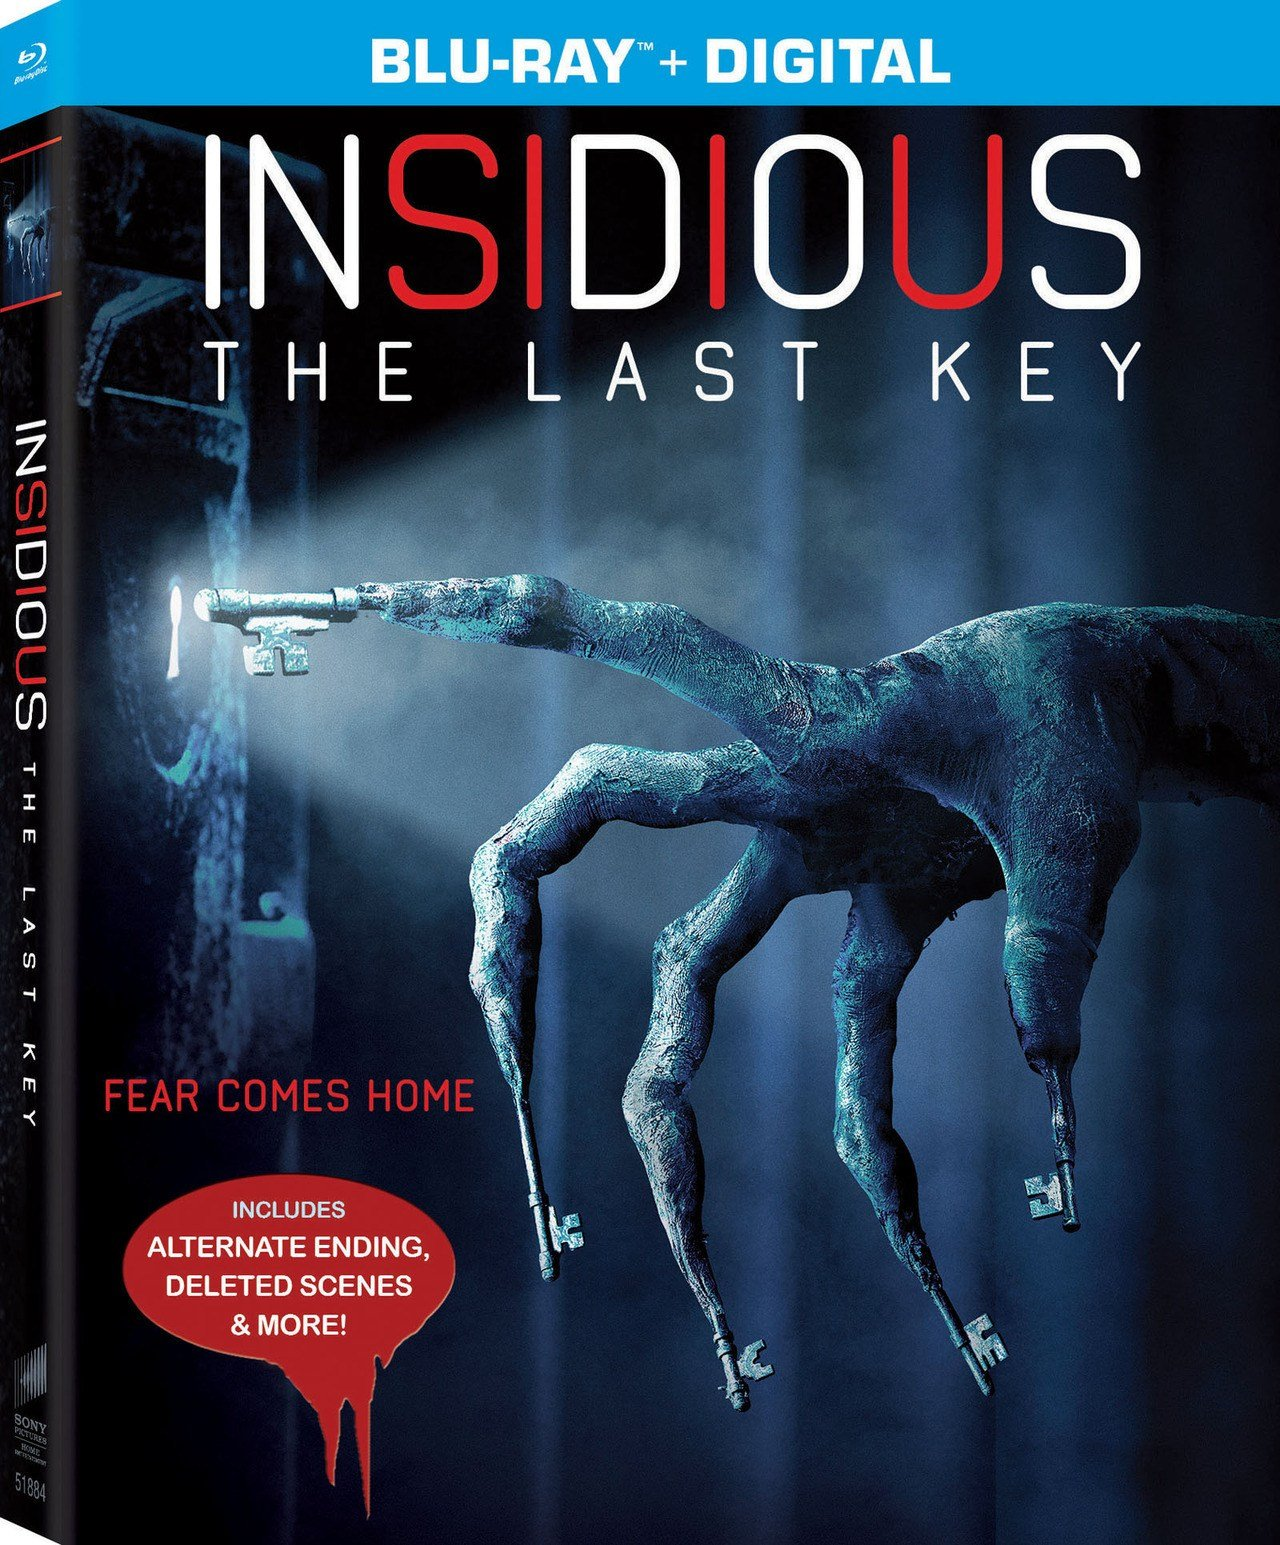 Blu-ray of Insidious: The Last Key